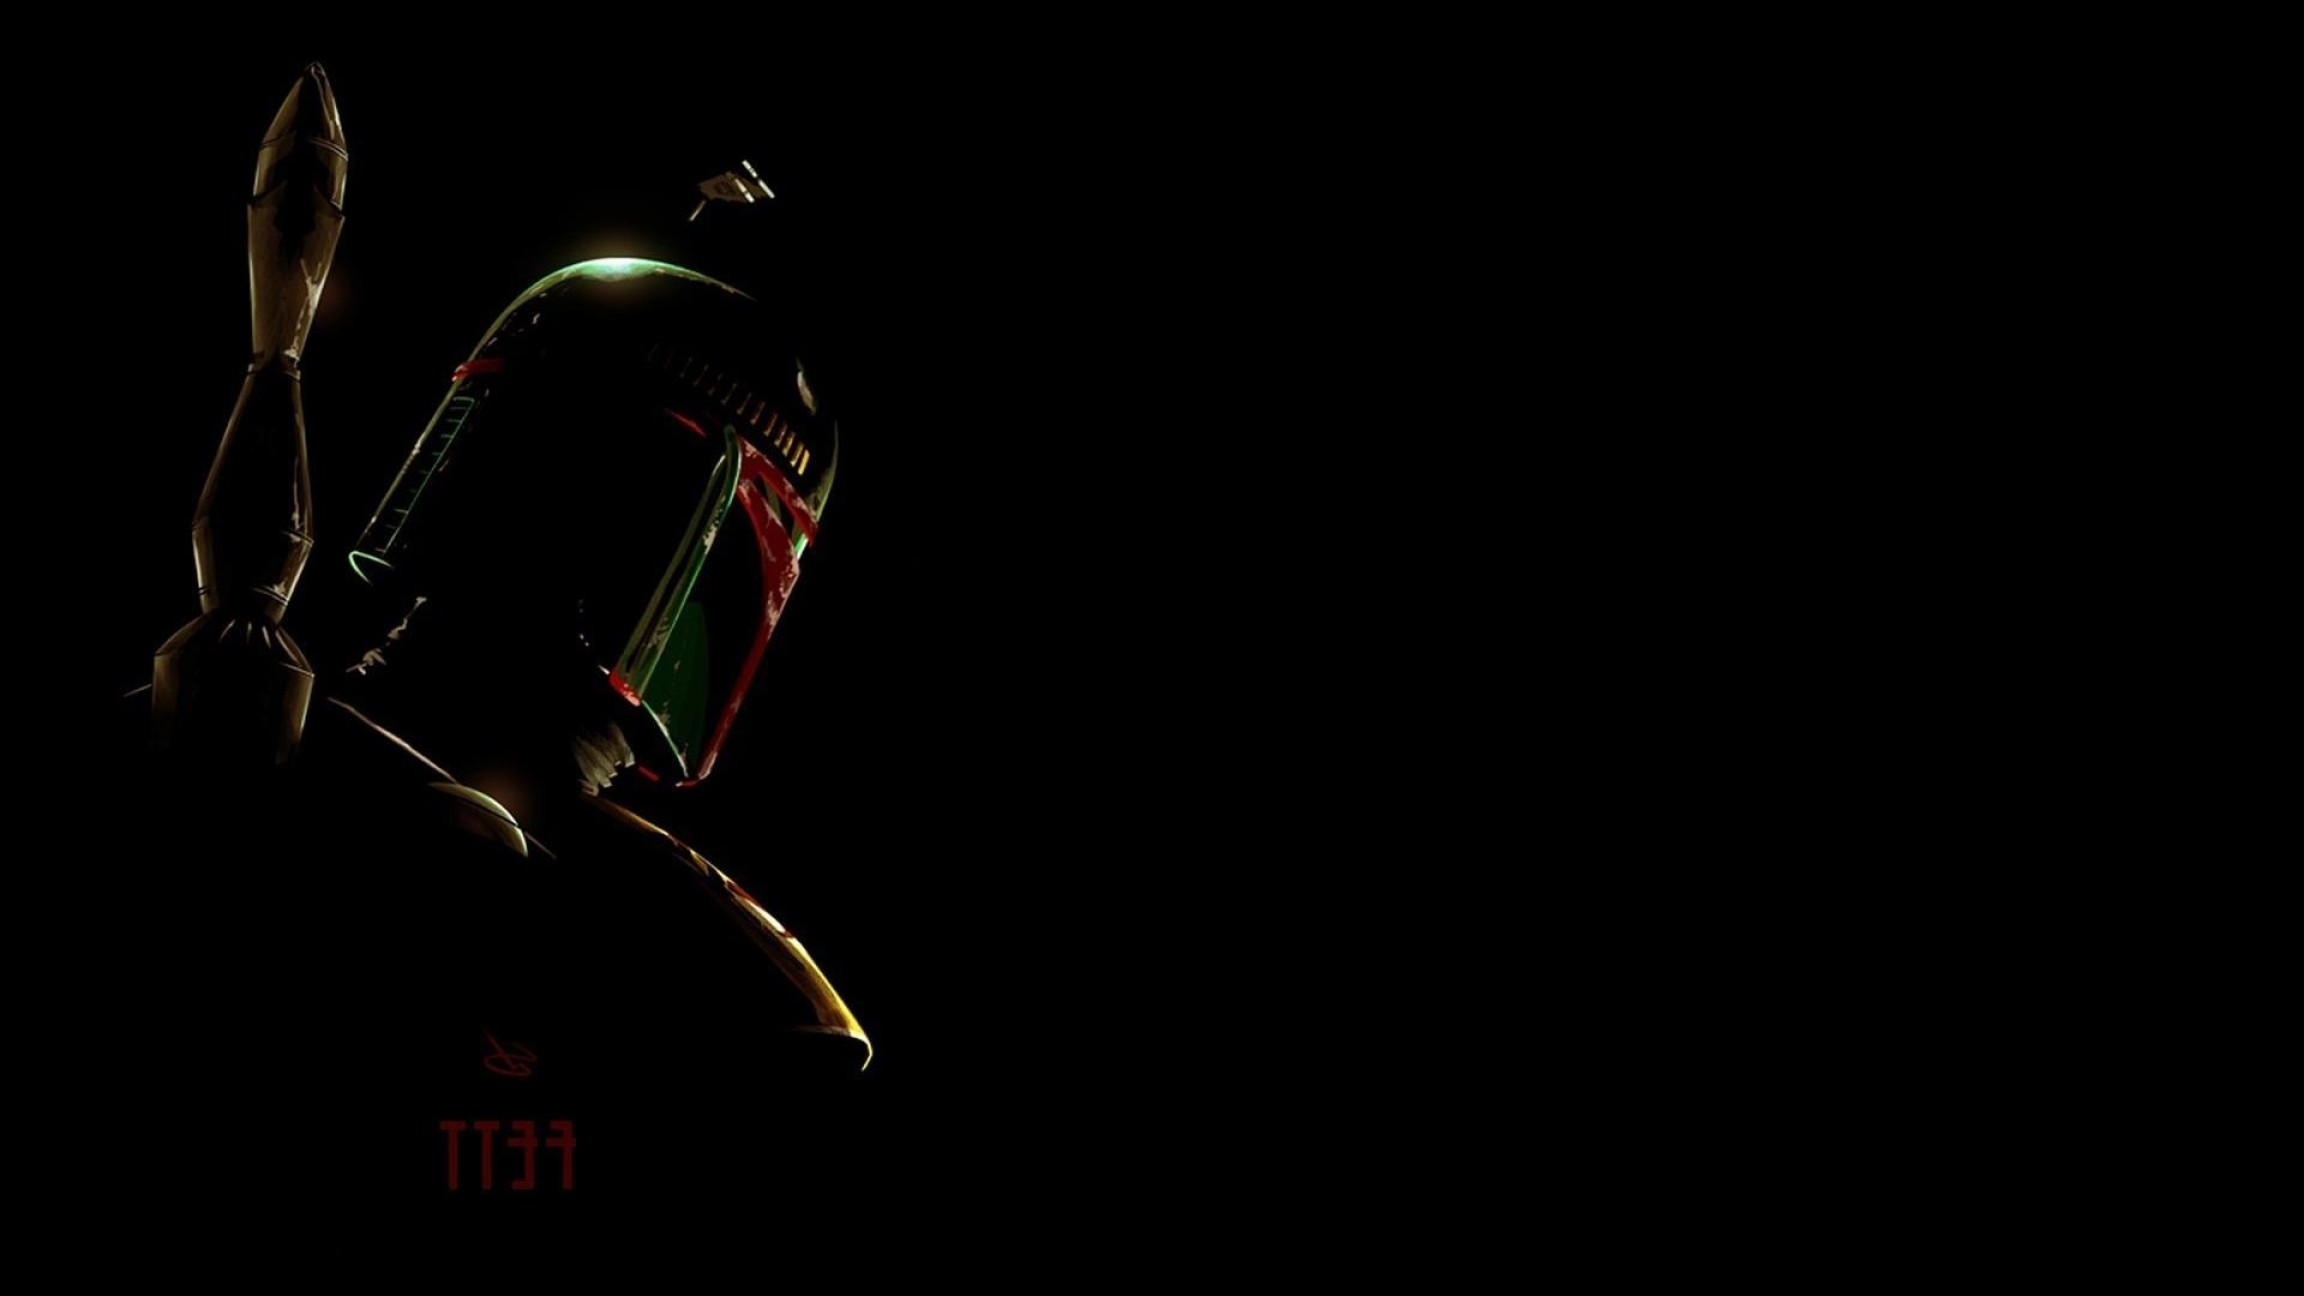 Boba Fett Vector Black And White: Silhouettes Boba Fett Bounty Hunter Black Background Wallpaper